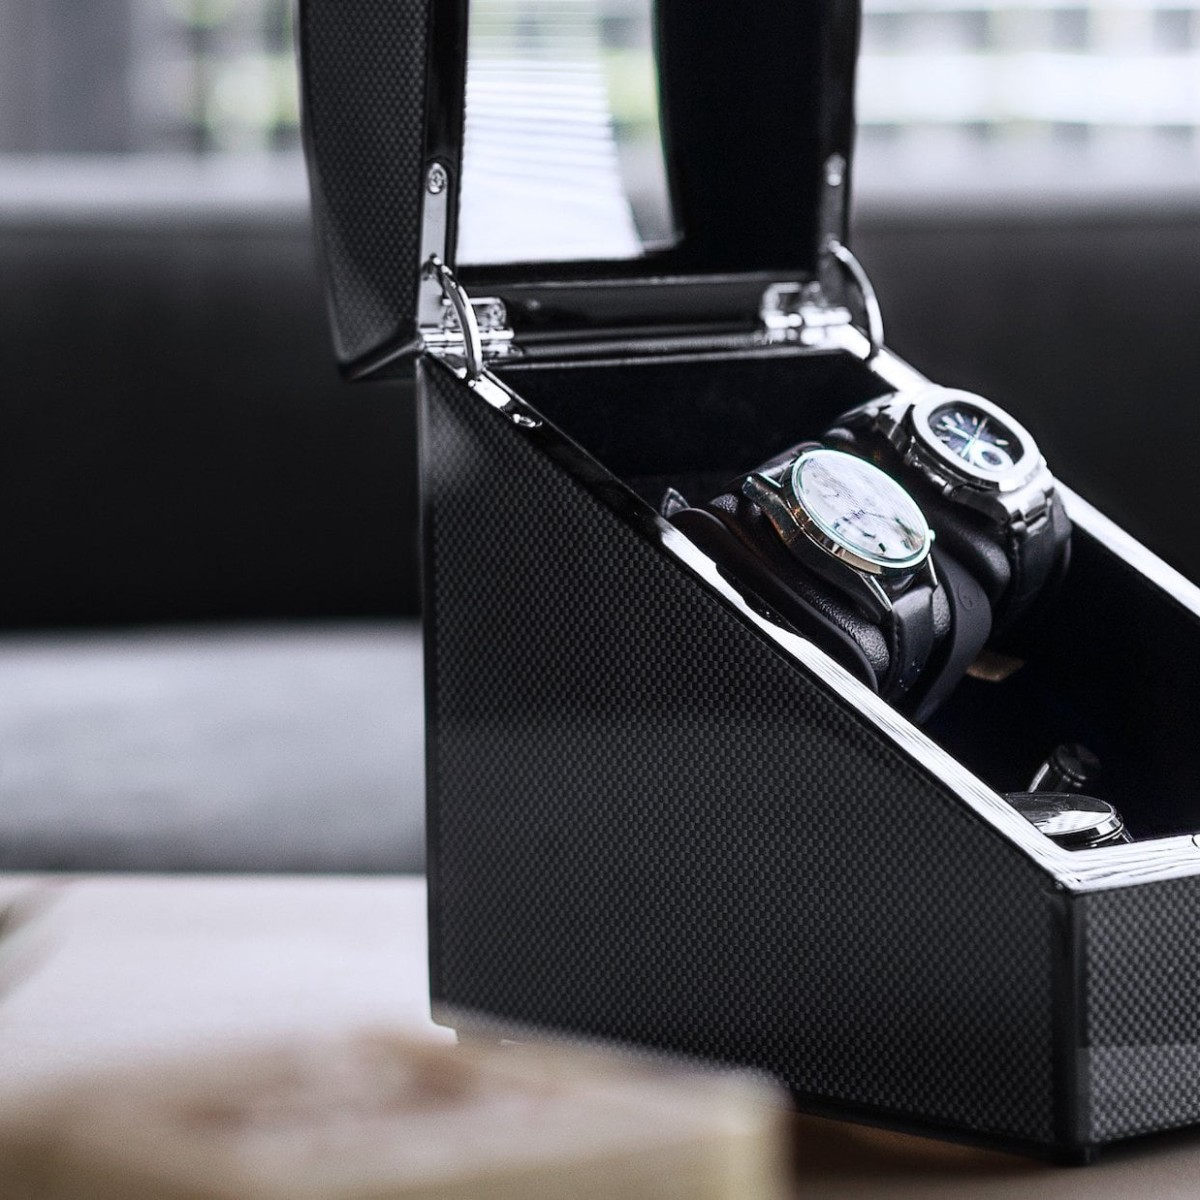 BillStone Avanti Plus 1 Carbon Fiber Watch Winder can rotate up to two watches